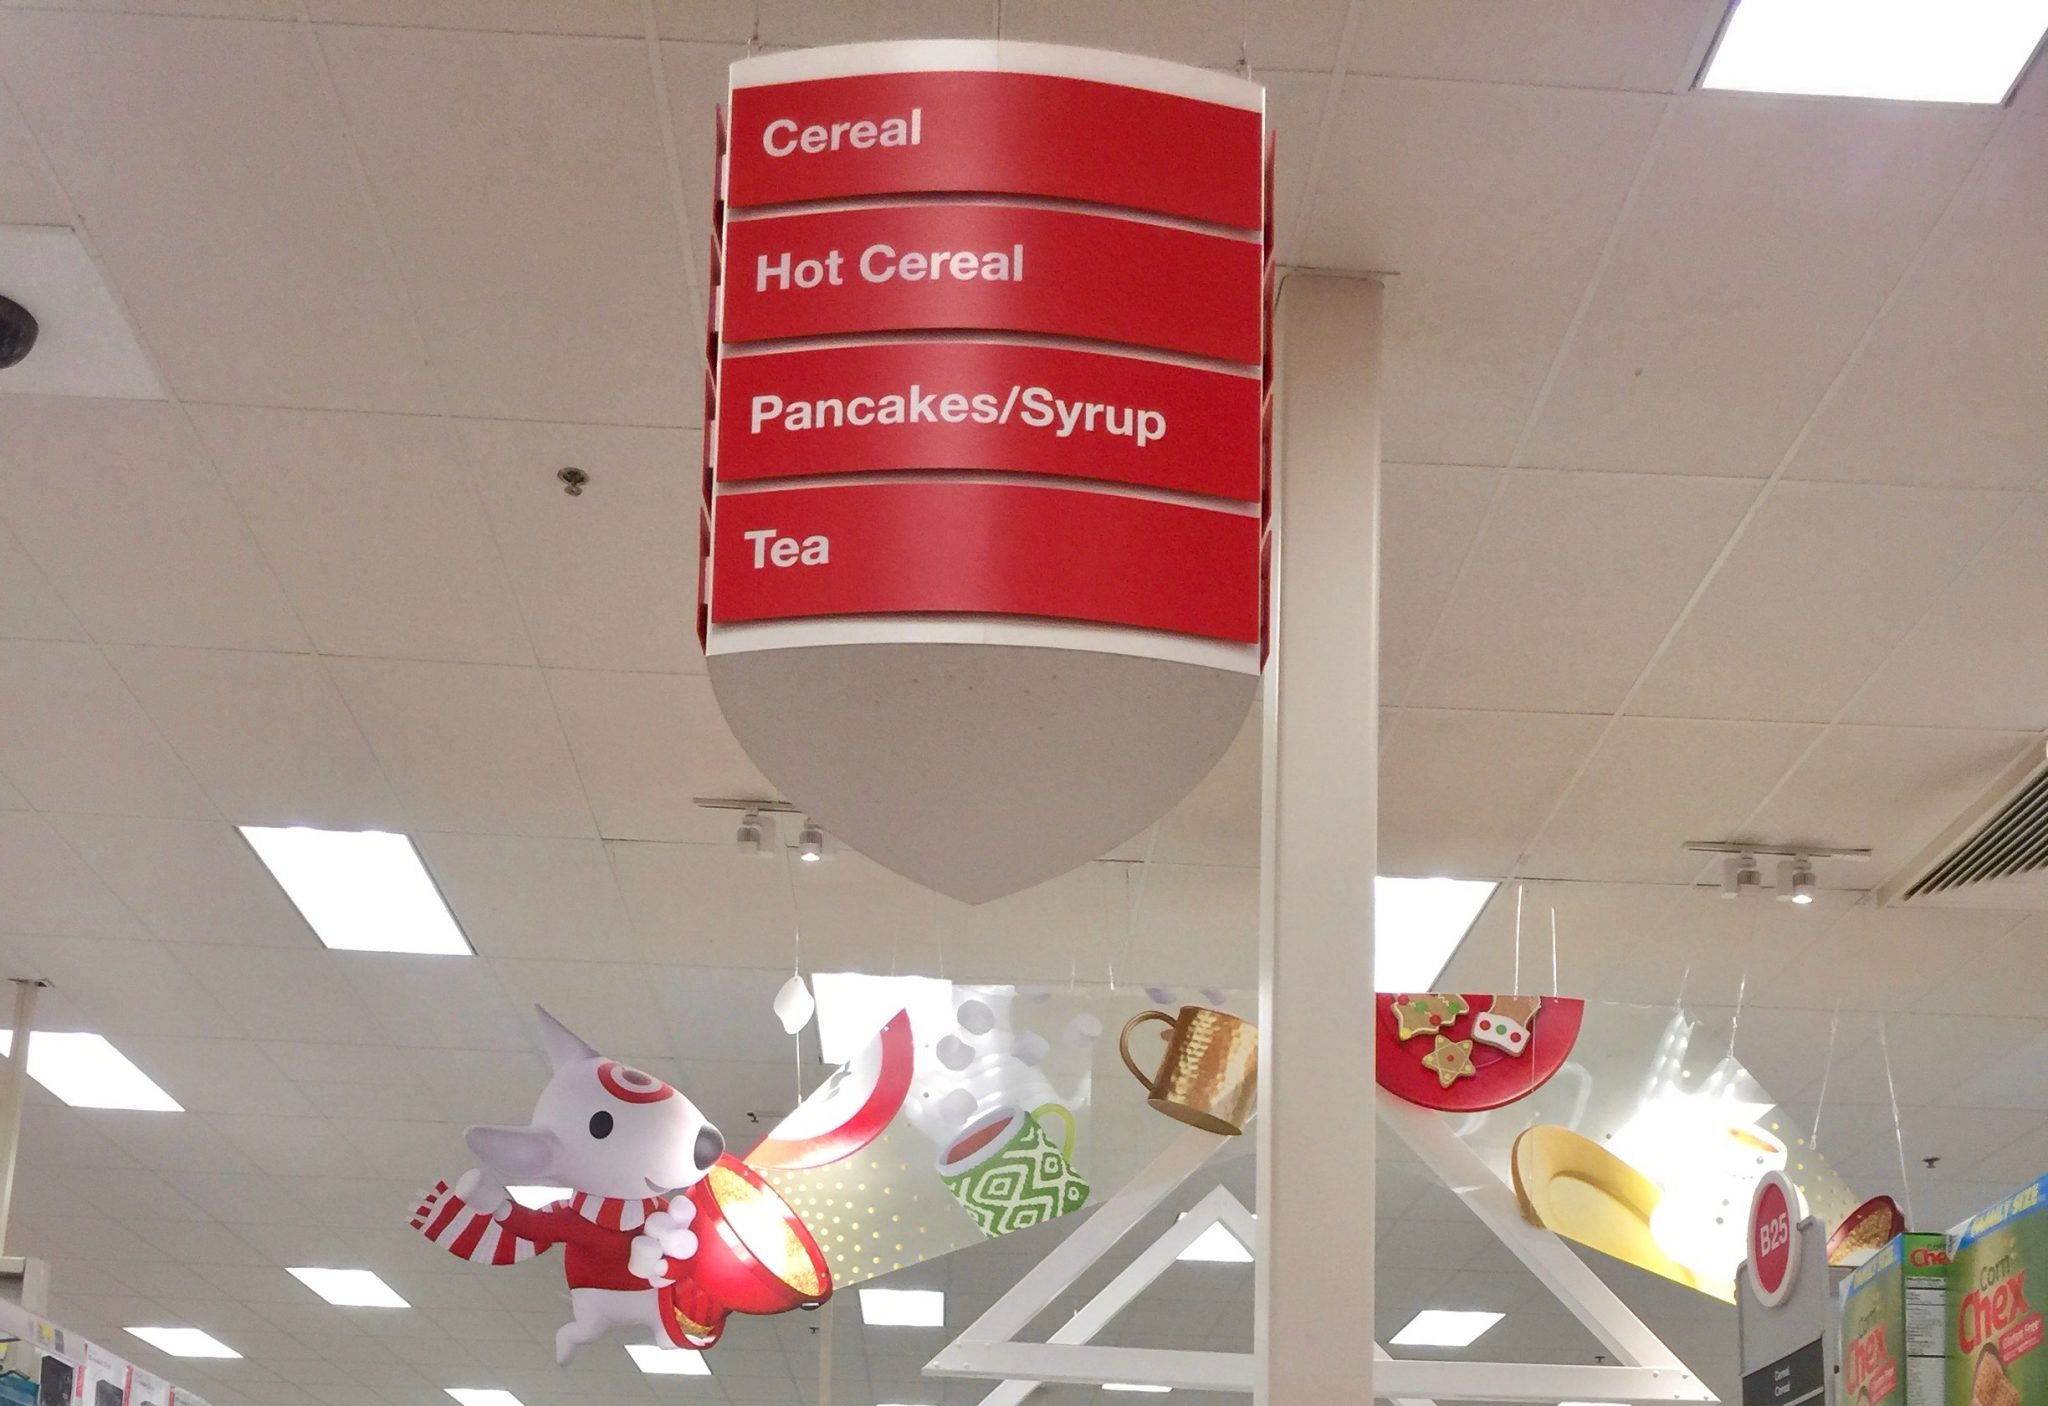 Cereal Aisle at Target